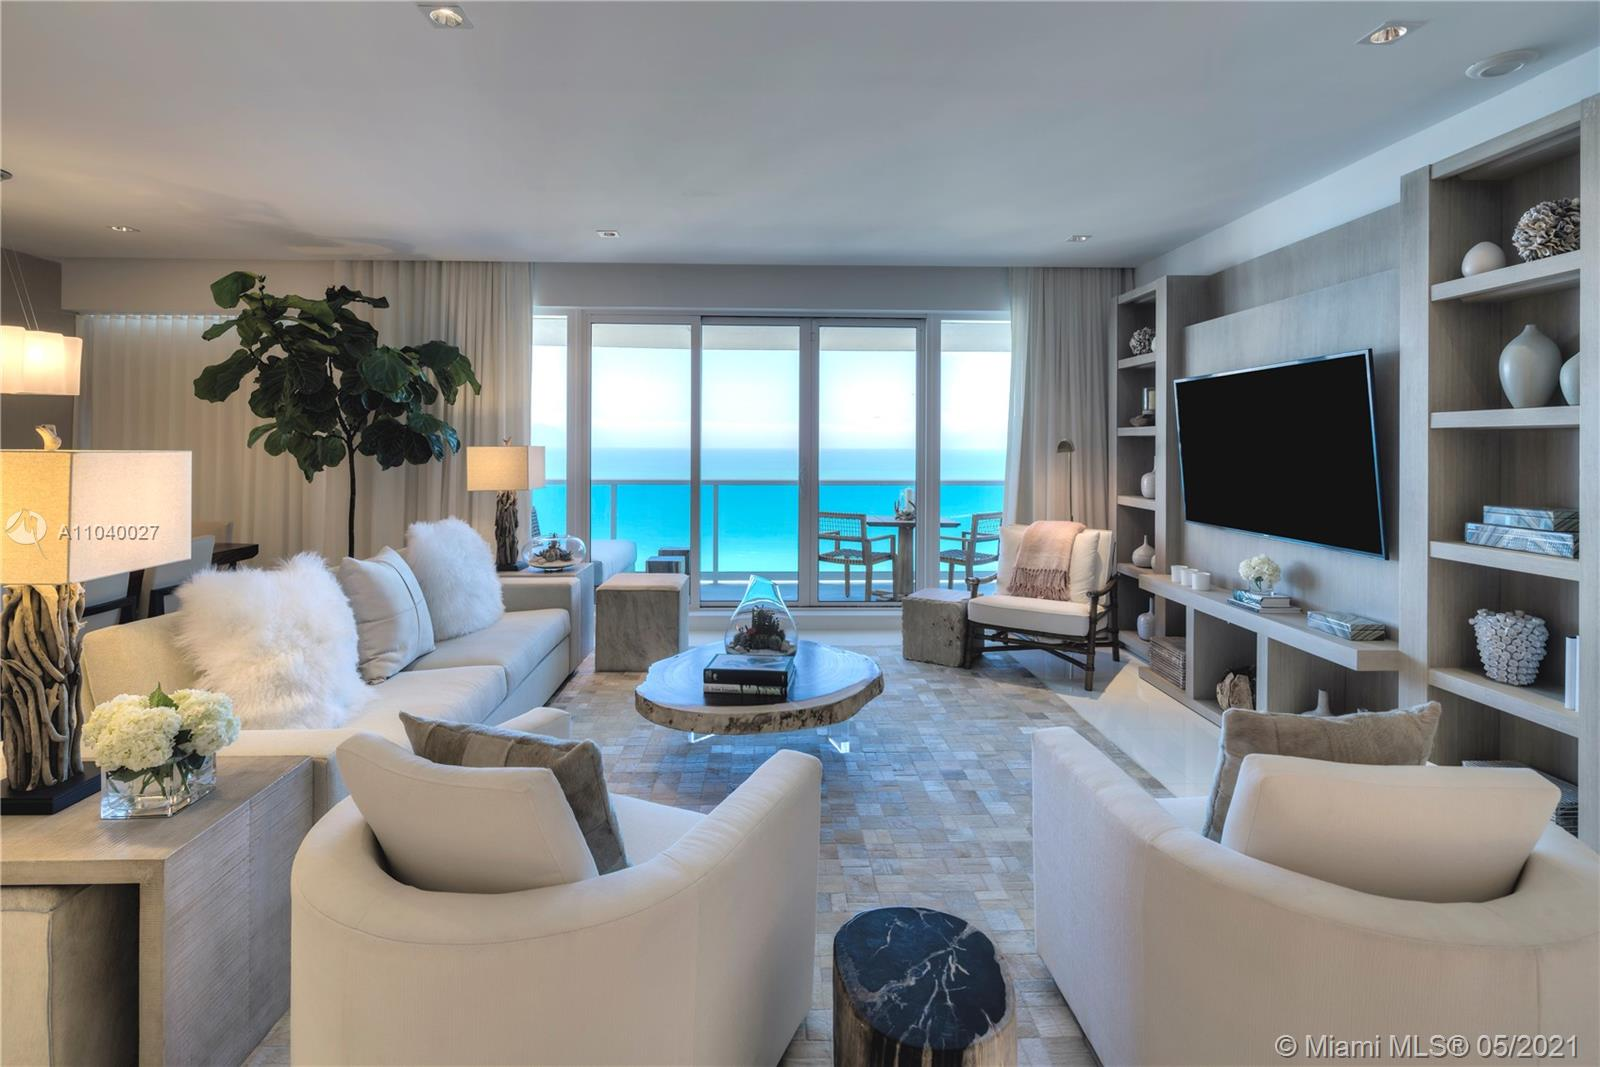 Enjoy over 80 Ft. of direct ocean views from every room in this ultra luxurious top floor 4 bedroom, 4.5 bathroom, 3,184 Sq. Ft. penthouse with two private balconies. Guests have access to a variety of white glove services including a private fully-staffed residence lobby, valet, concierge, chauffeured Teslas, the hotels 5 star luxurious eco-conscious amenities.  Rental includes linens and towels, toiletries, dishes, pots and pans, daily coffee and tea, full use of the hotel amenities: 4 pools, 4 restaurants, 3 bars, 14,000 Sq. Ft spa and hair salon, Soul Cycle, chauffeured Tesla. Sought after by many celebrities, this is truly a magnificent property and an experience you will never forget.  Available for daily, weekly, monthly and yearly rentals through Five Star Luxury Travel.